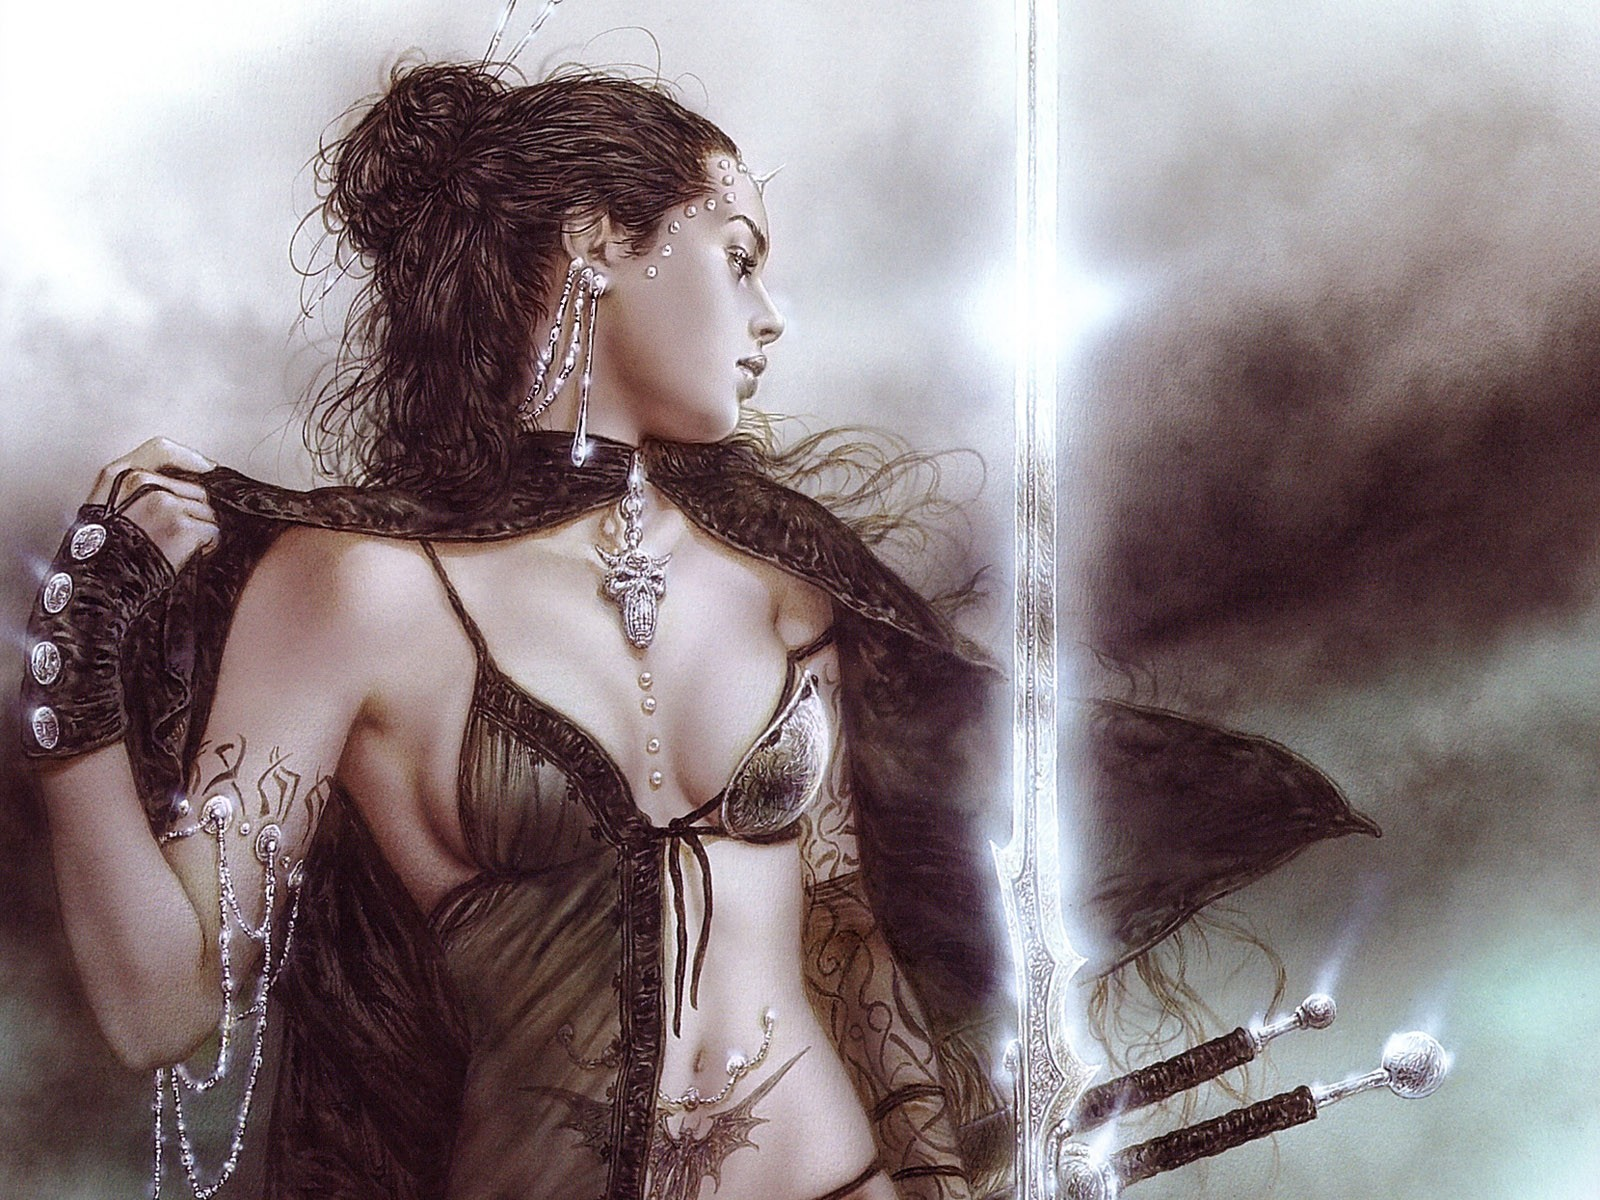 luis royo artwork HD Wallpaper